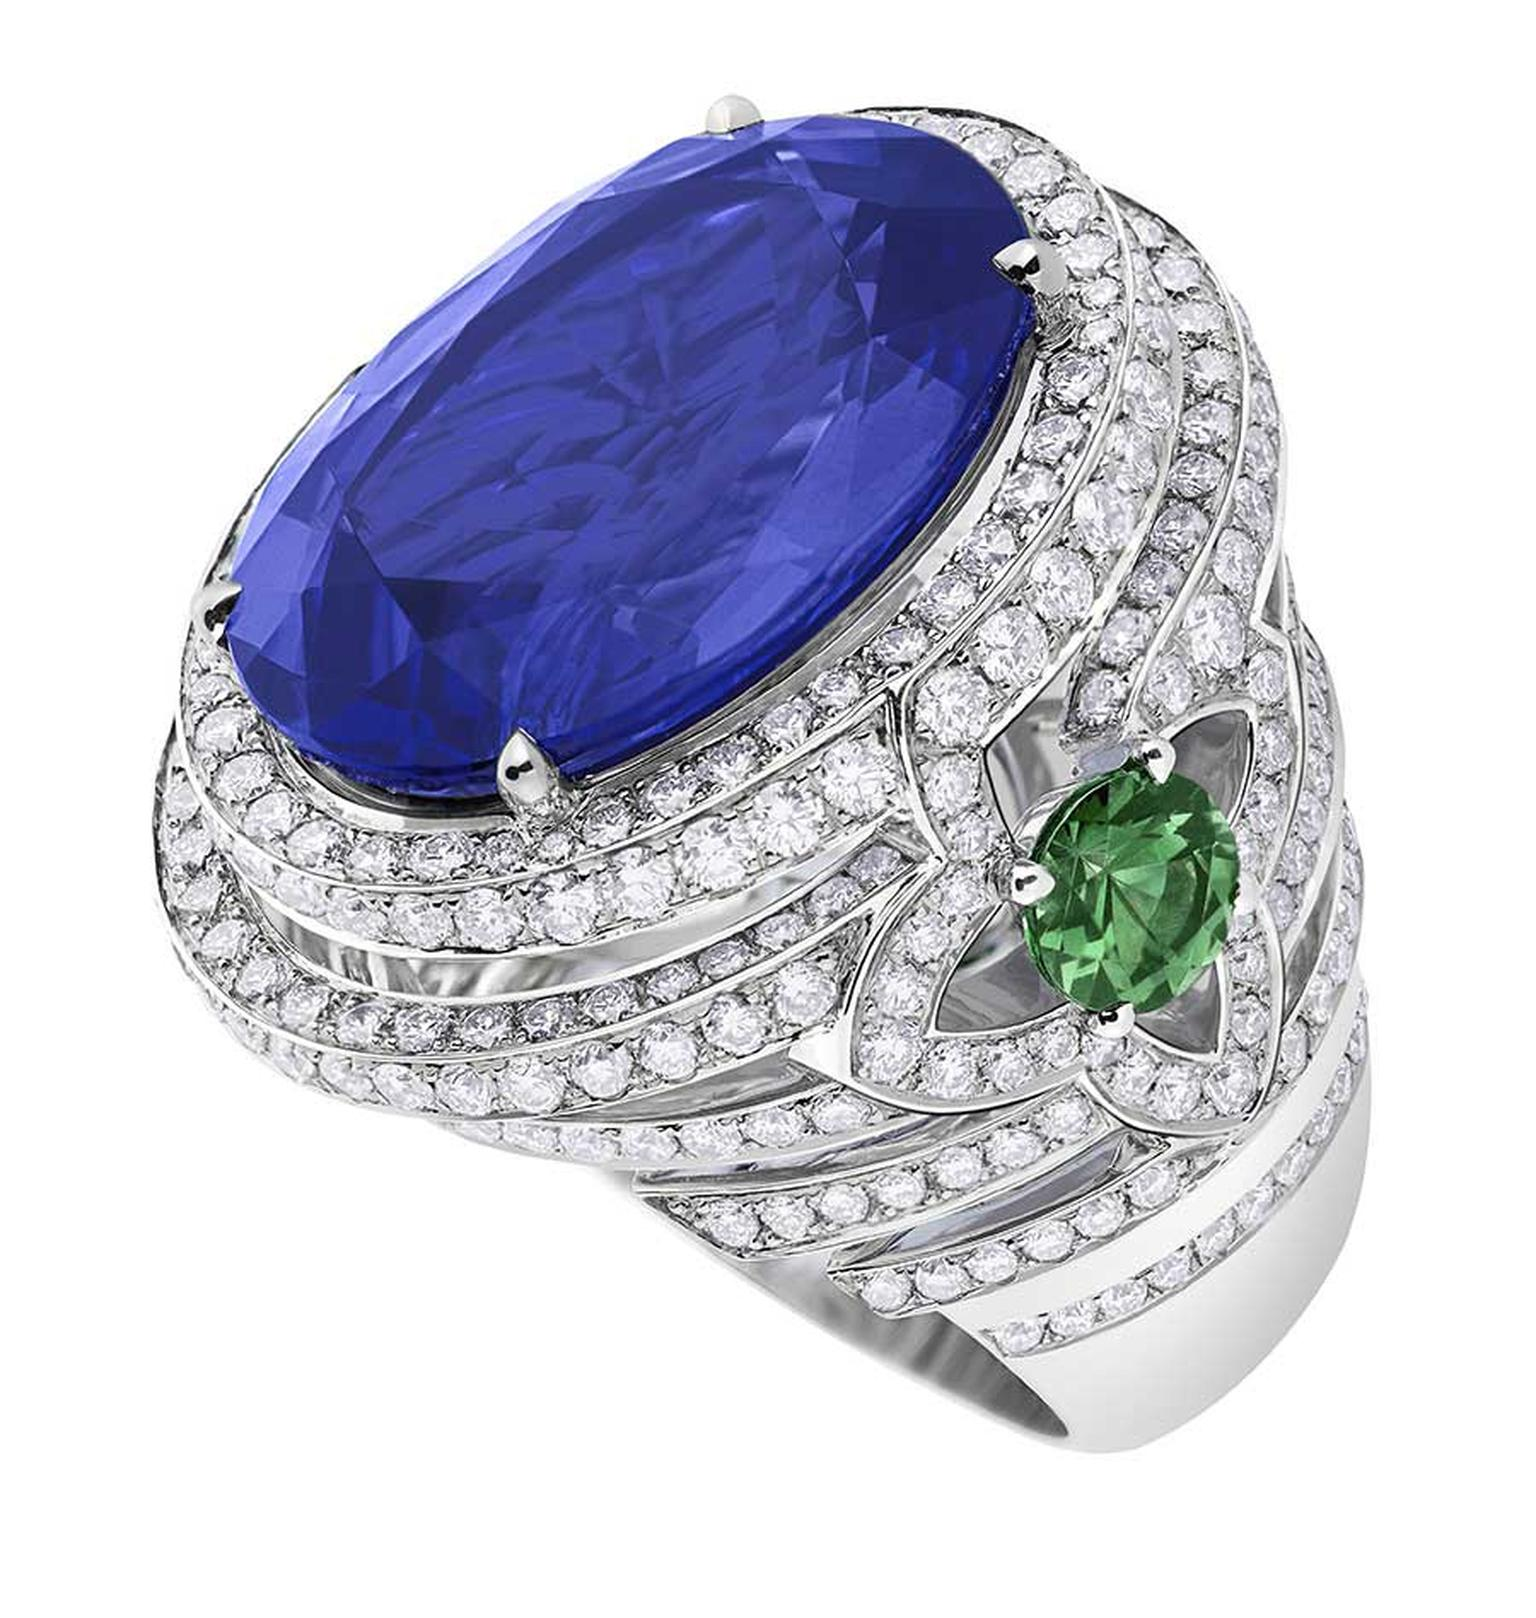 Orangerie des Tuileries ring from the Escale á Paris collection of jewels by Louis Vuitton, featuring a large central tanzanite, green tsavorites and diamonds.